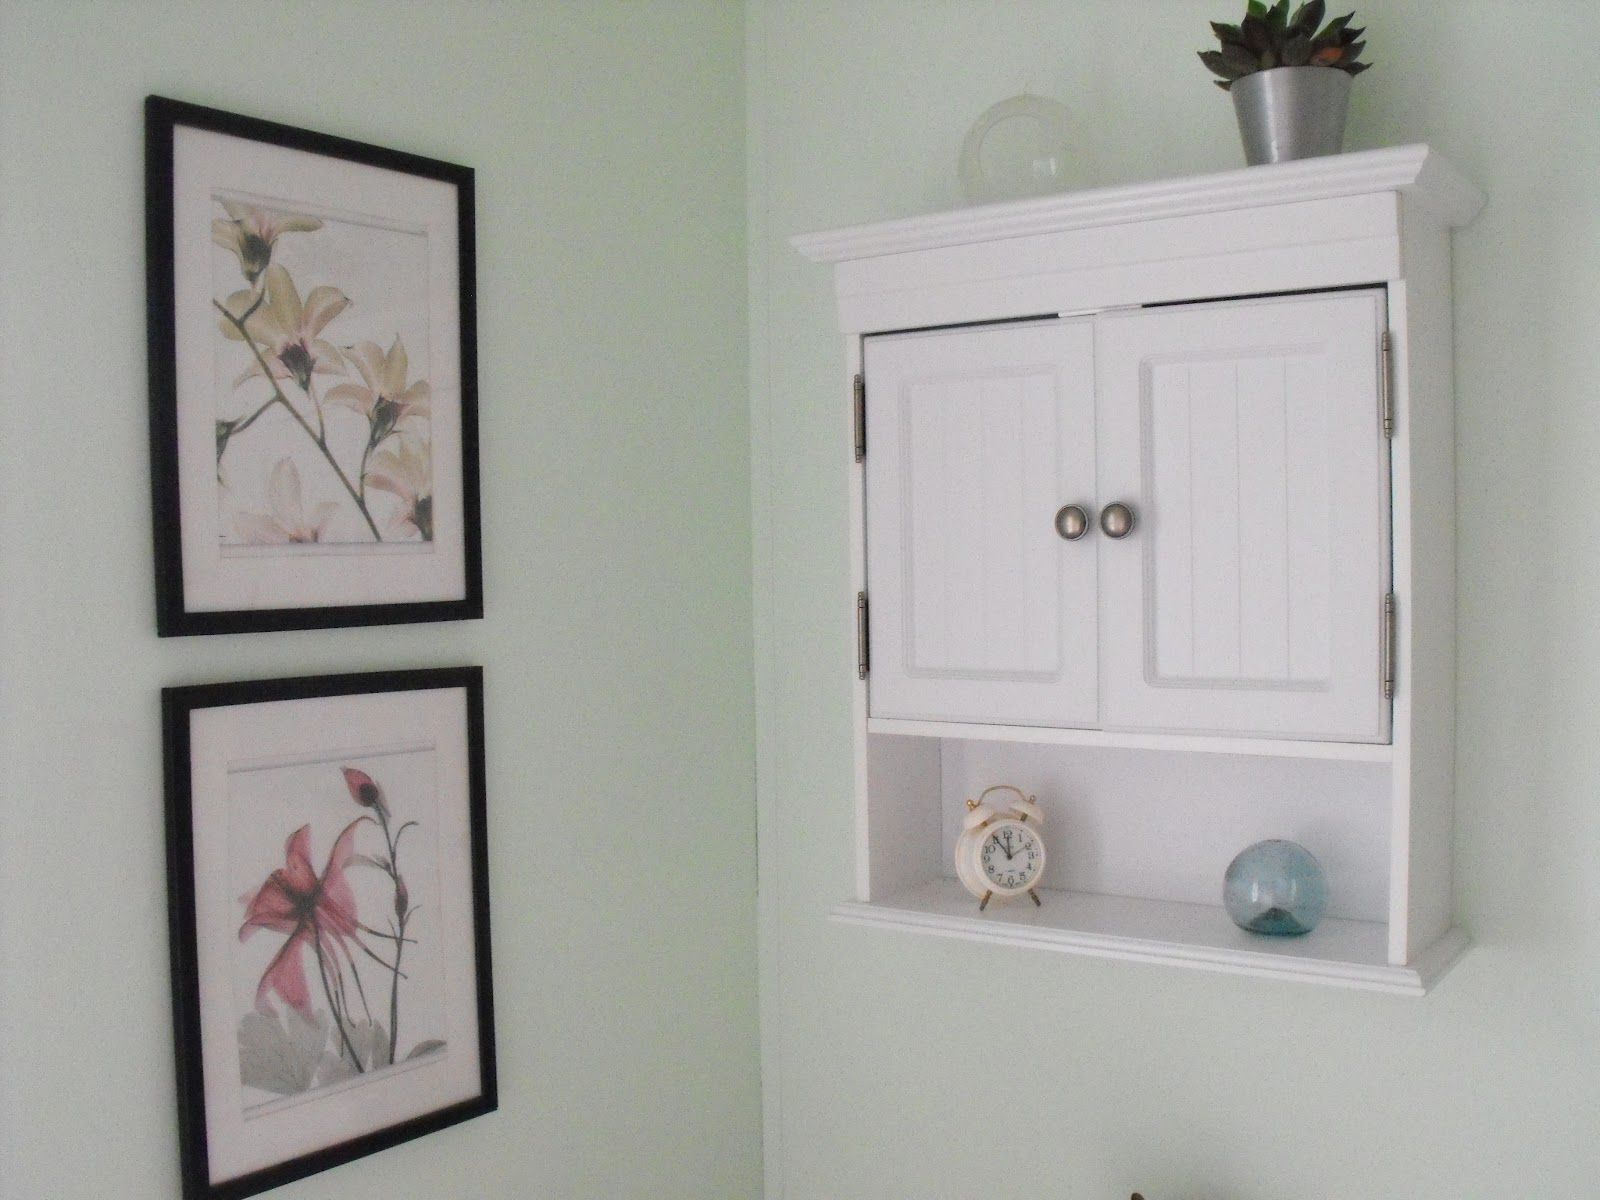 Menards over the toilet Bathroom Cabinets And Vanities | added ...